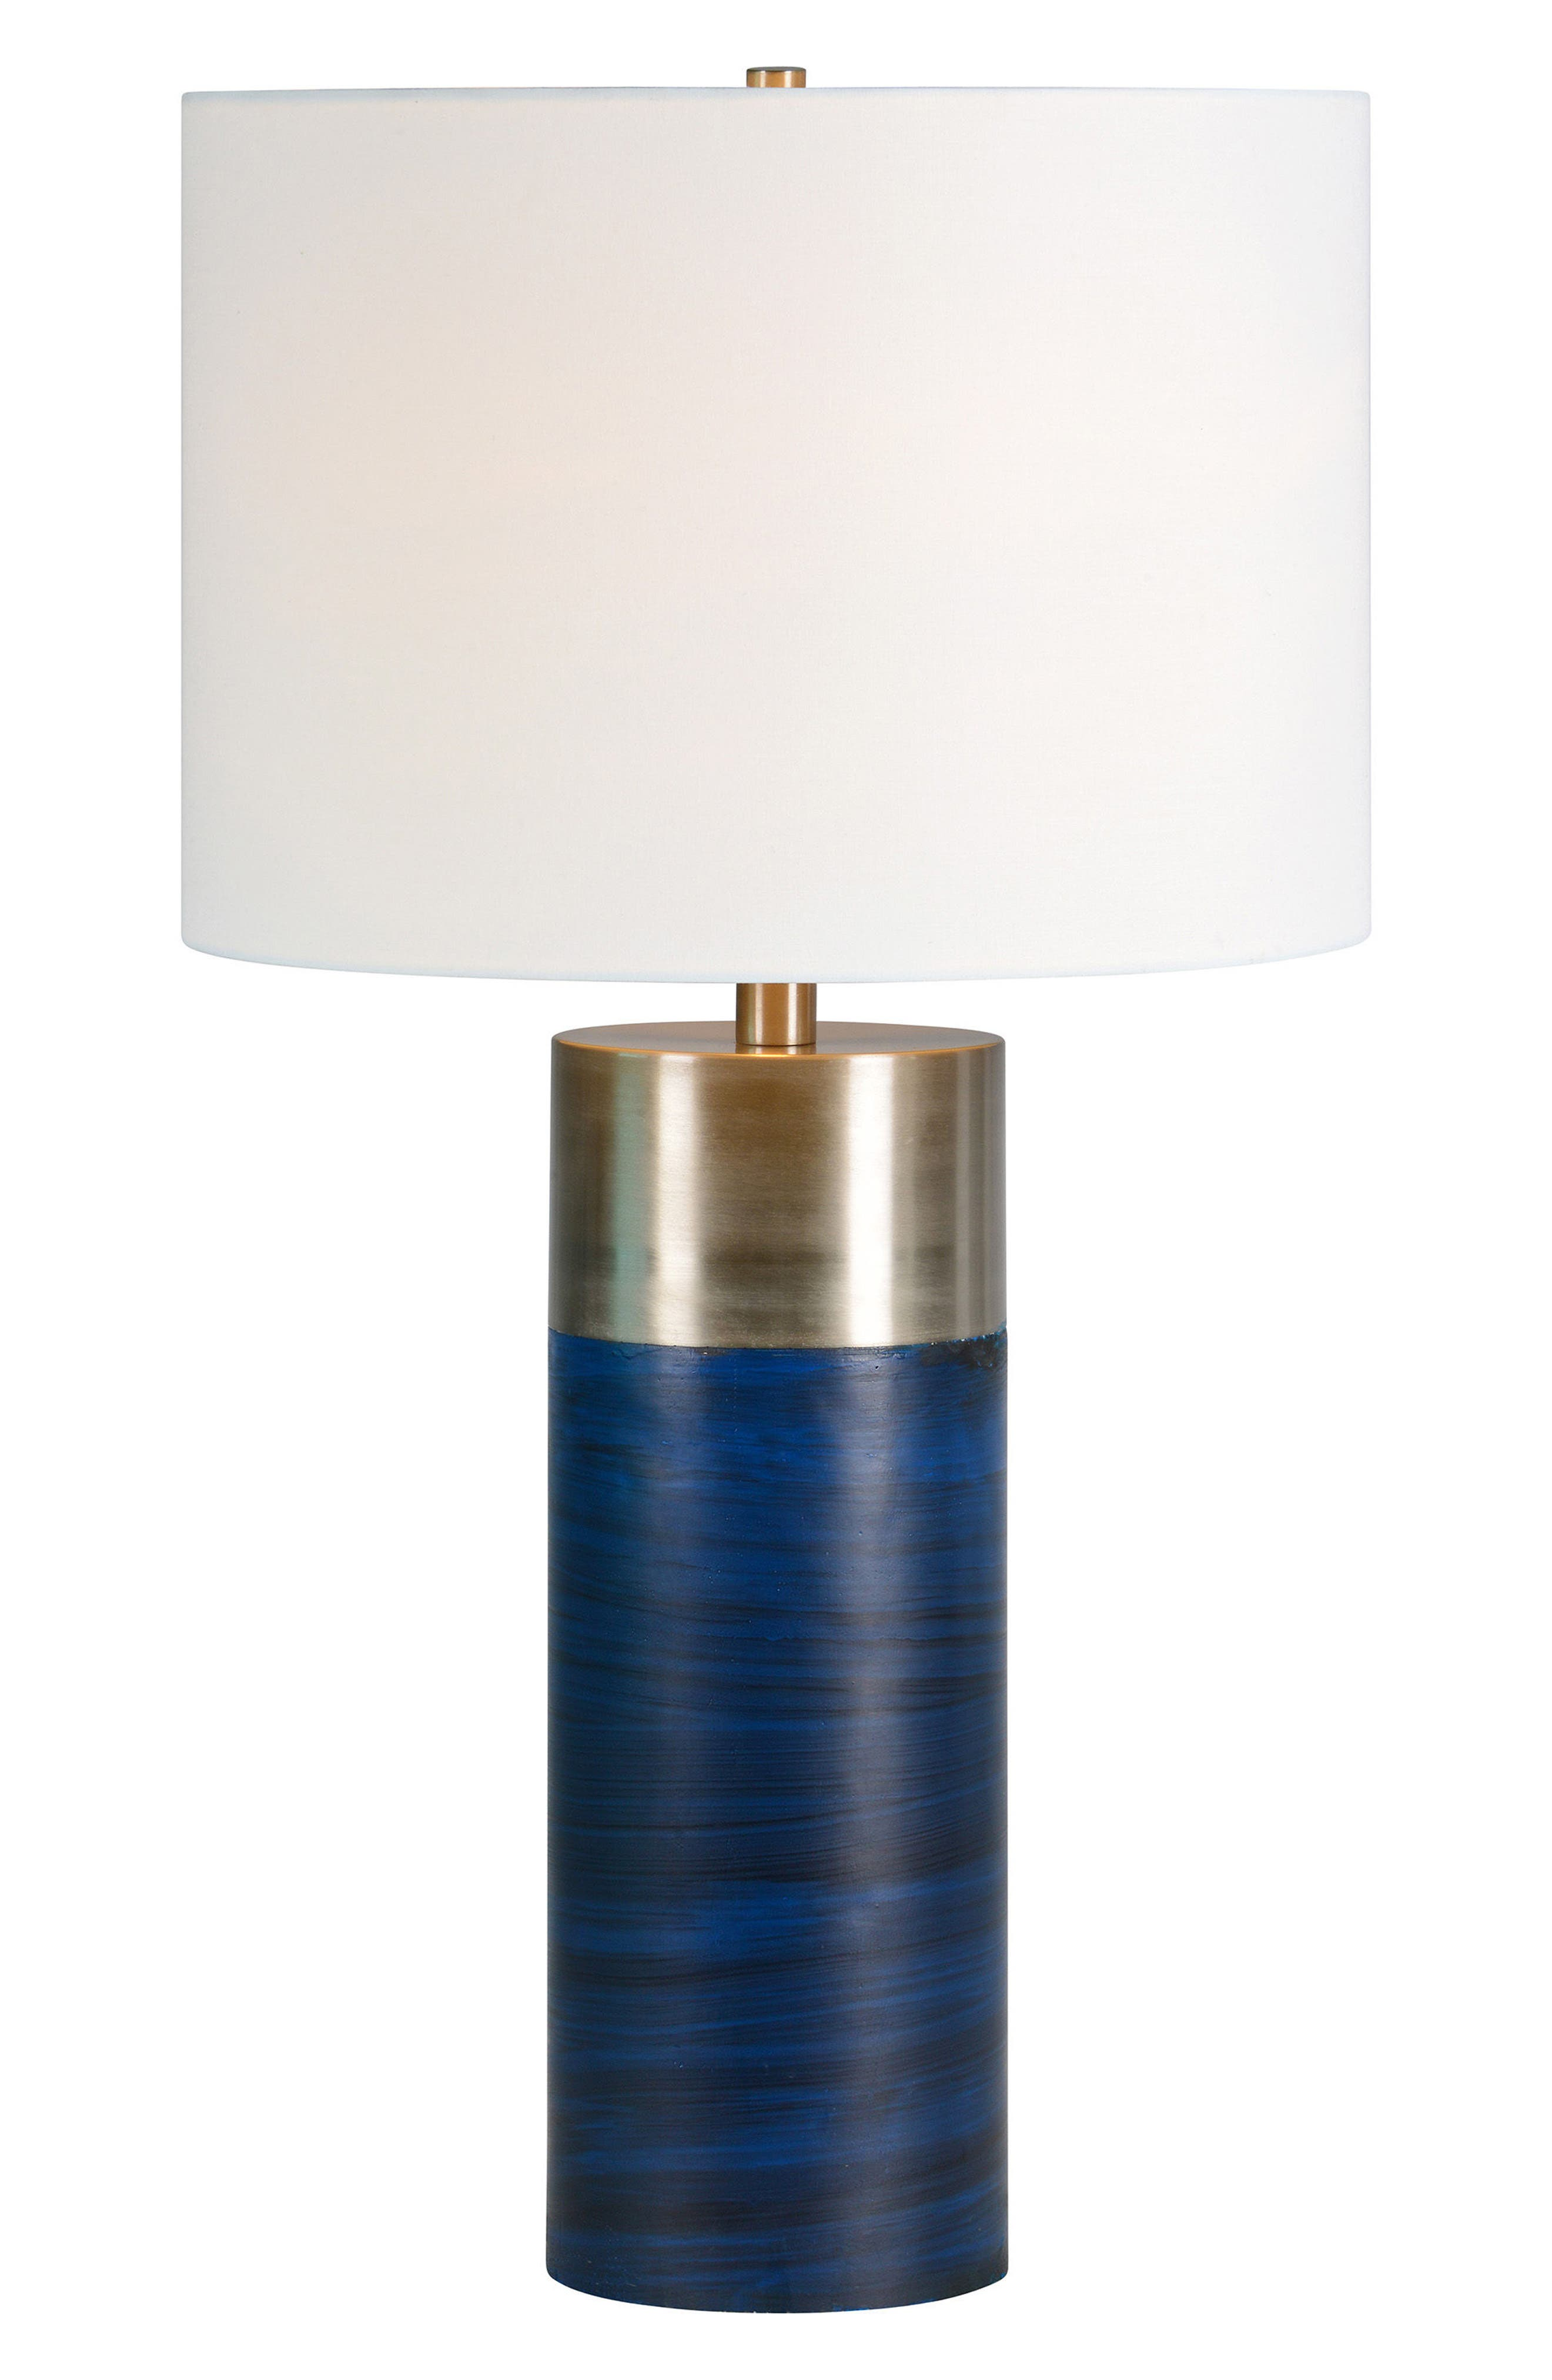 Main Image - Renwil Glint Table Lamp